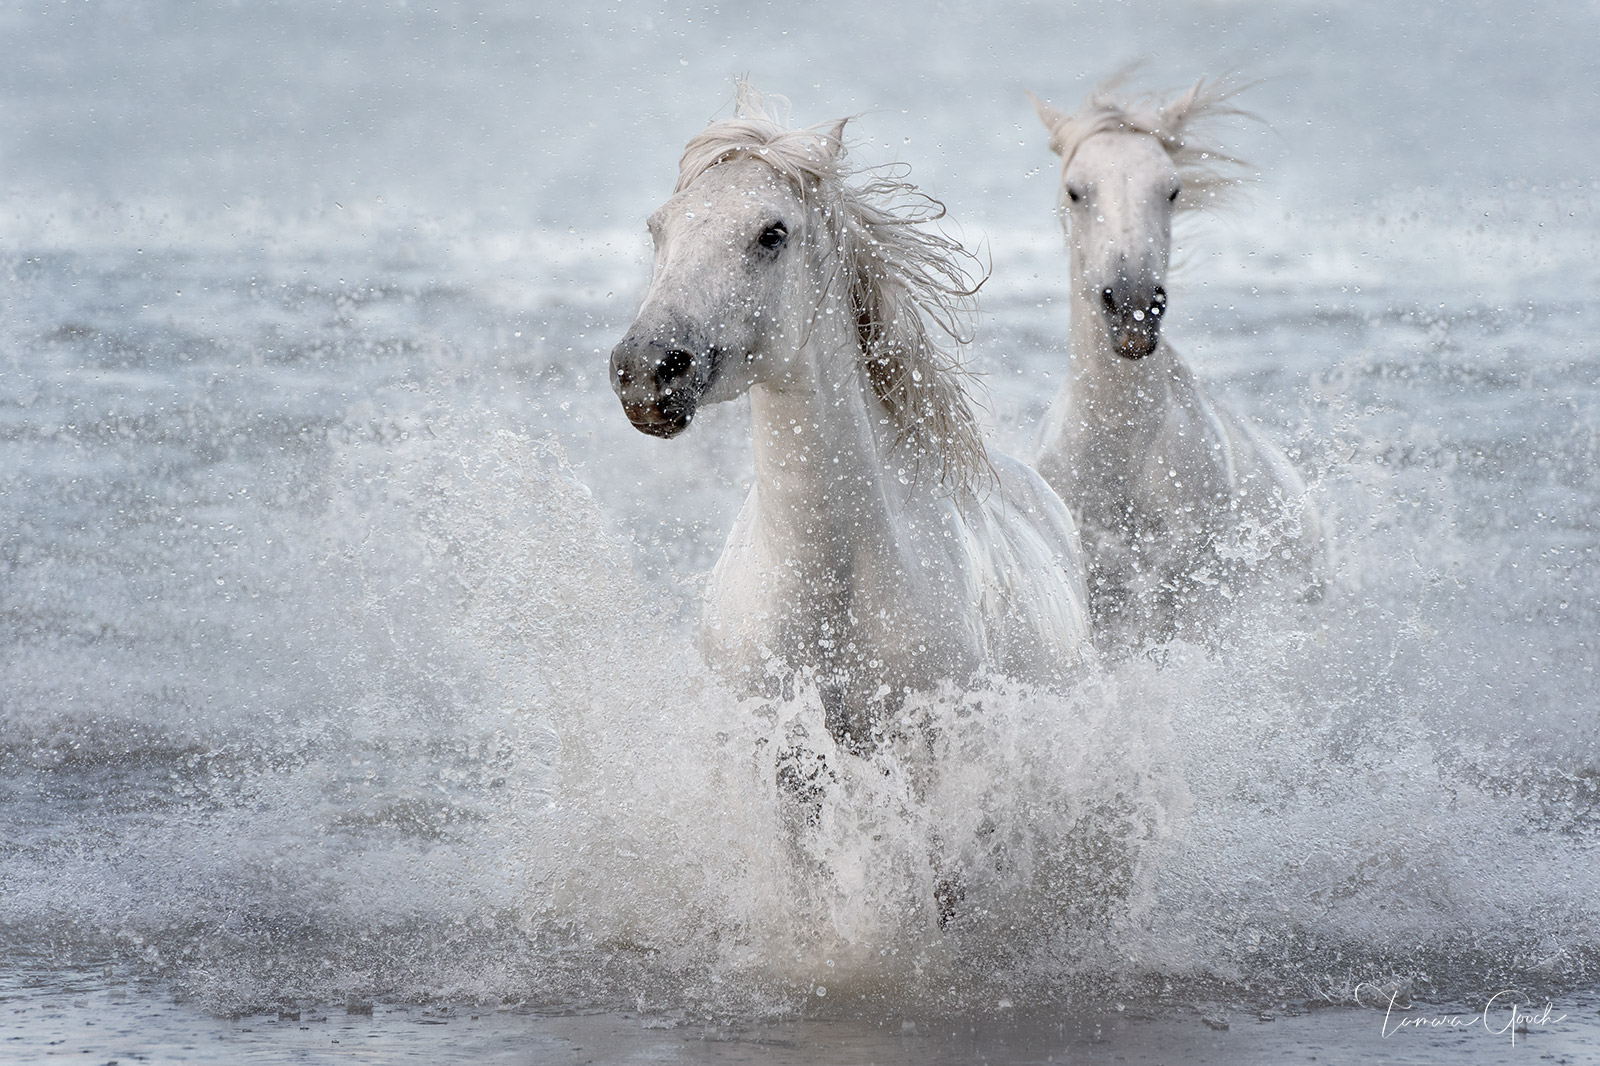 Two white horses of the Camargue splashing in the Mediterranean Sea.